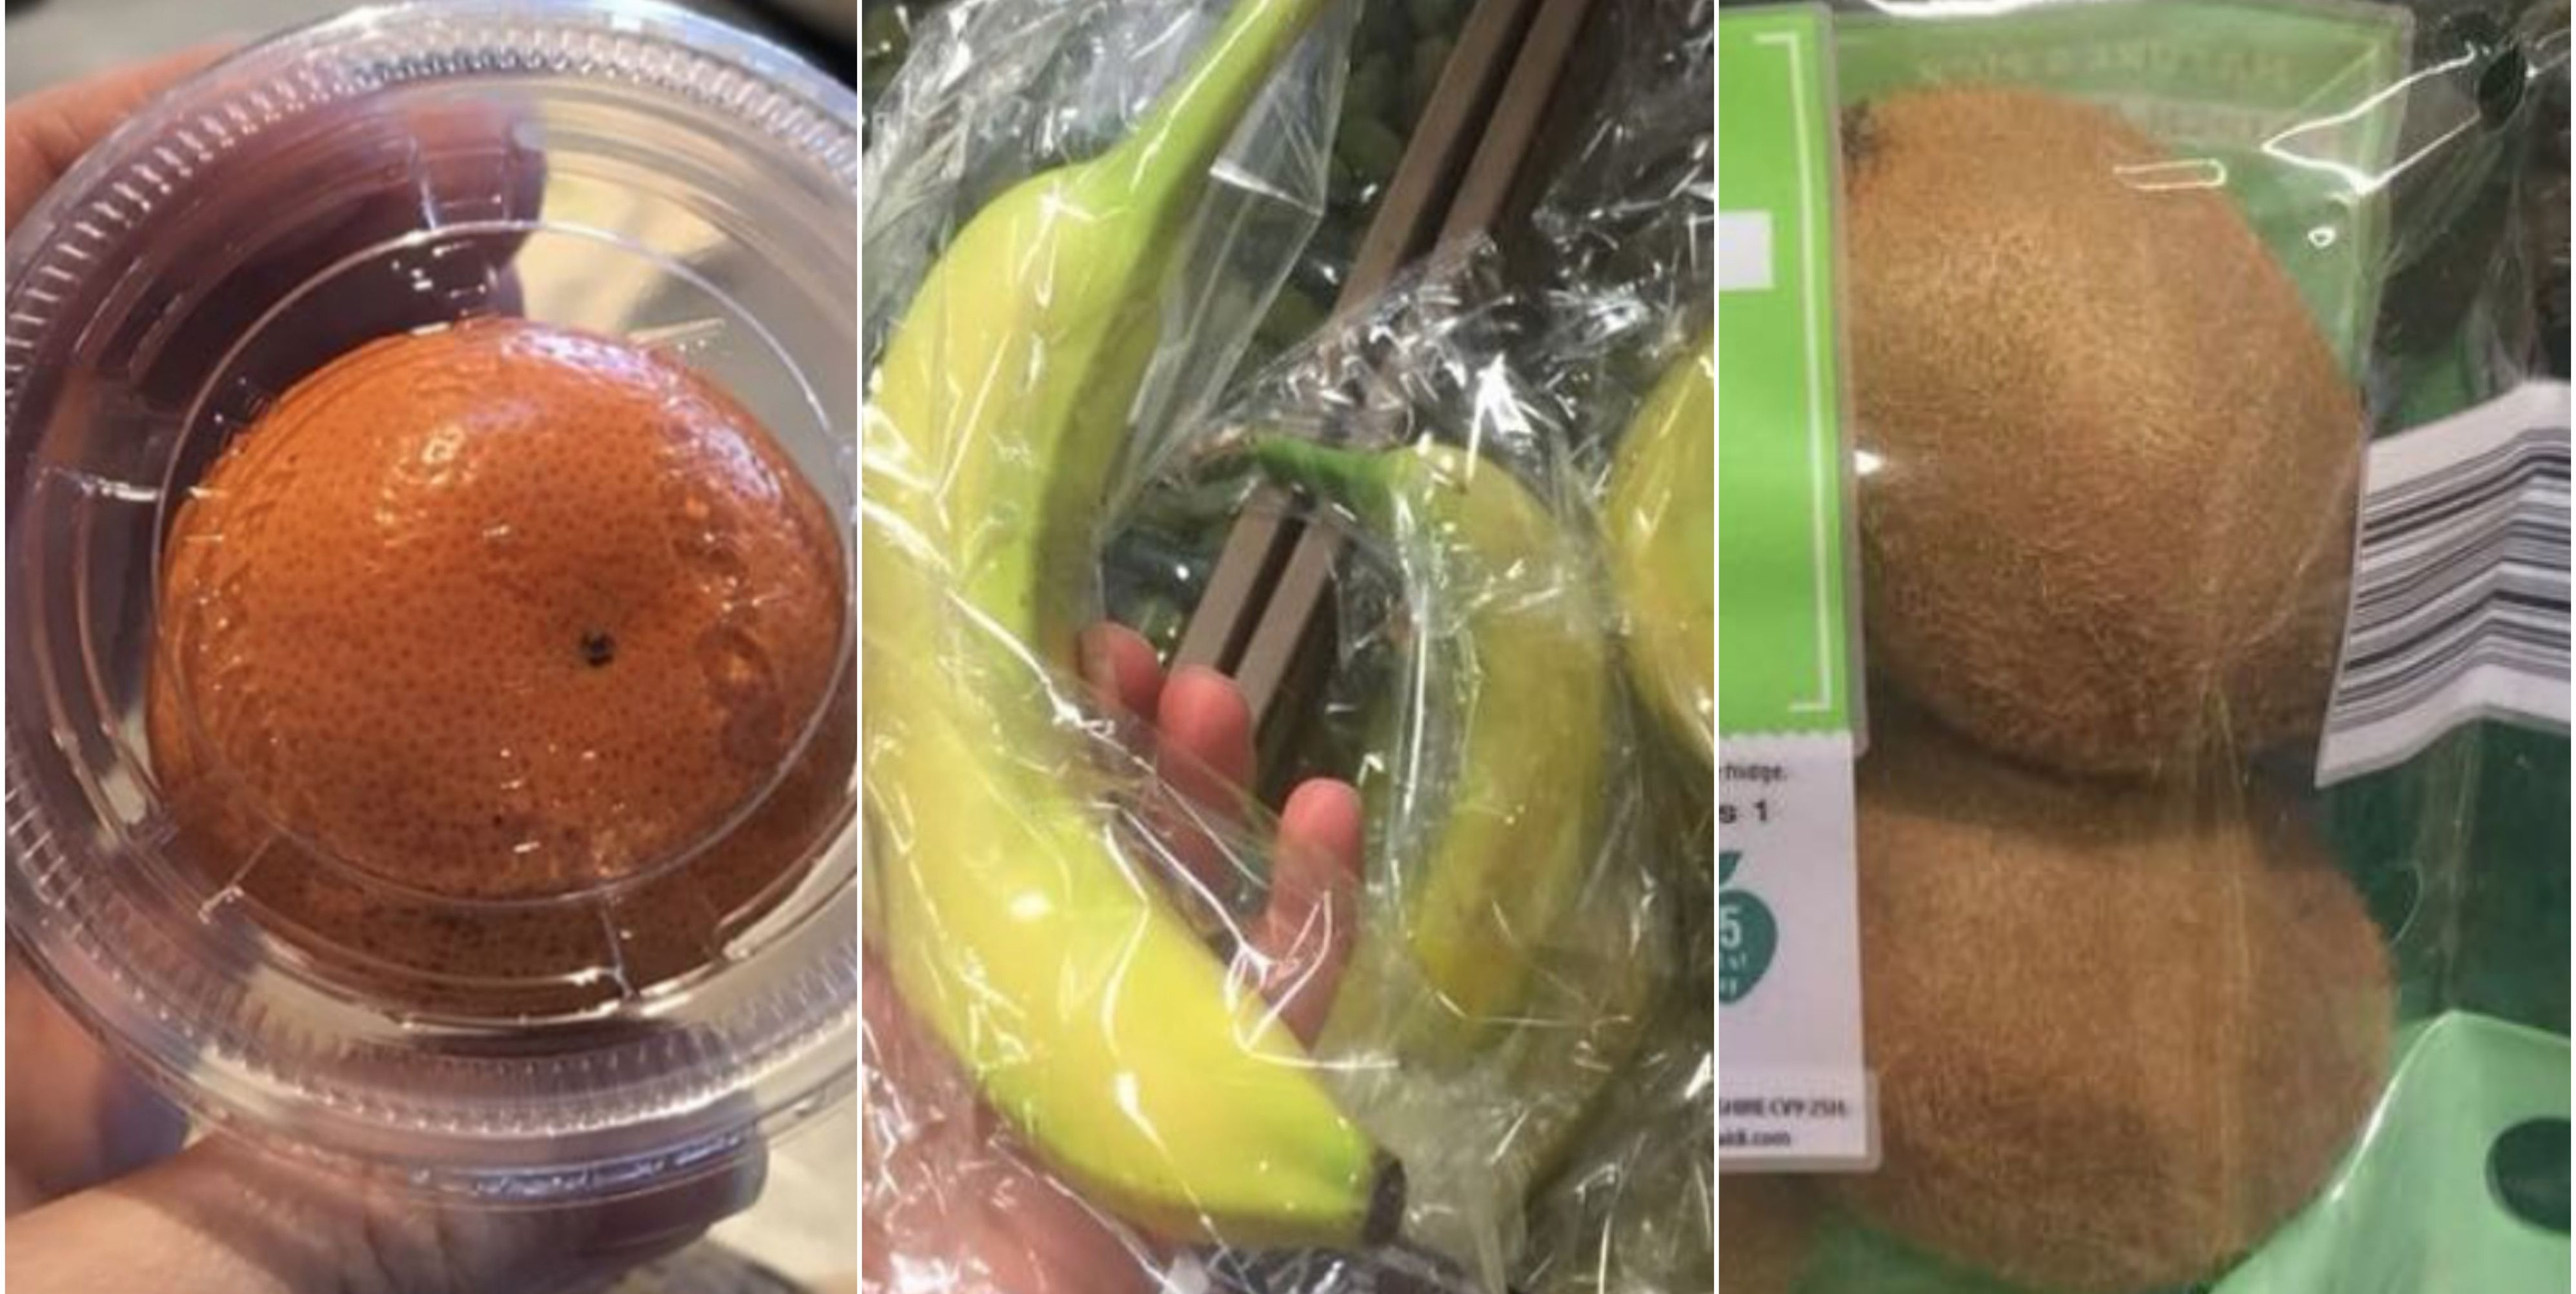 Plastic fruit packaging